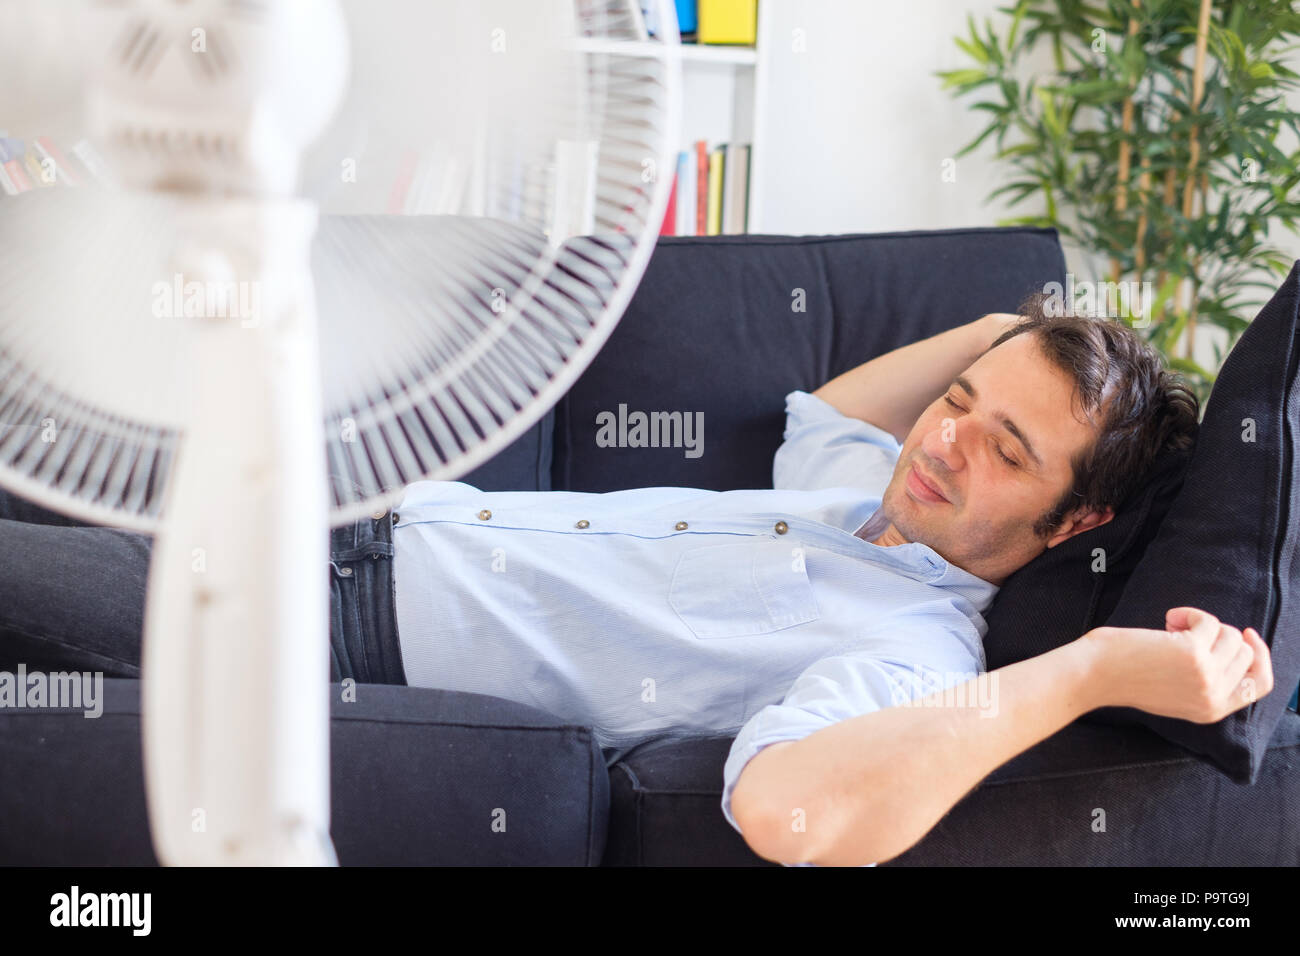 Man refreshing with electric fan against summer heat wave - Stock Image